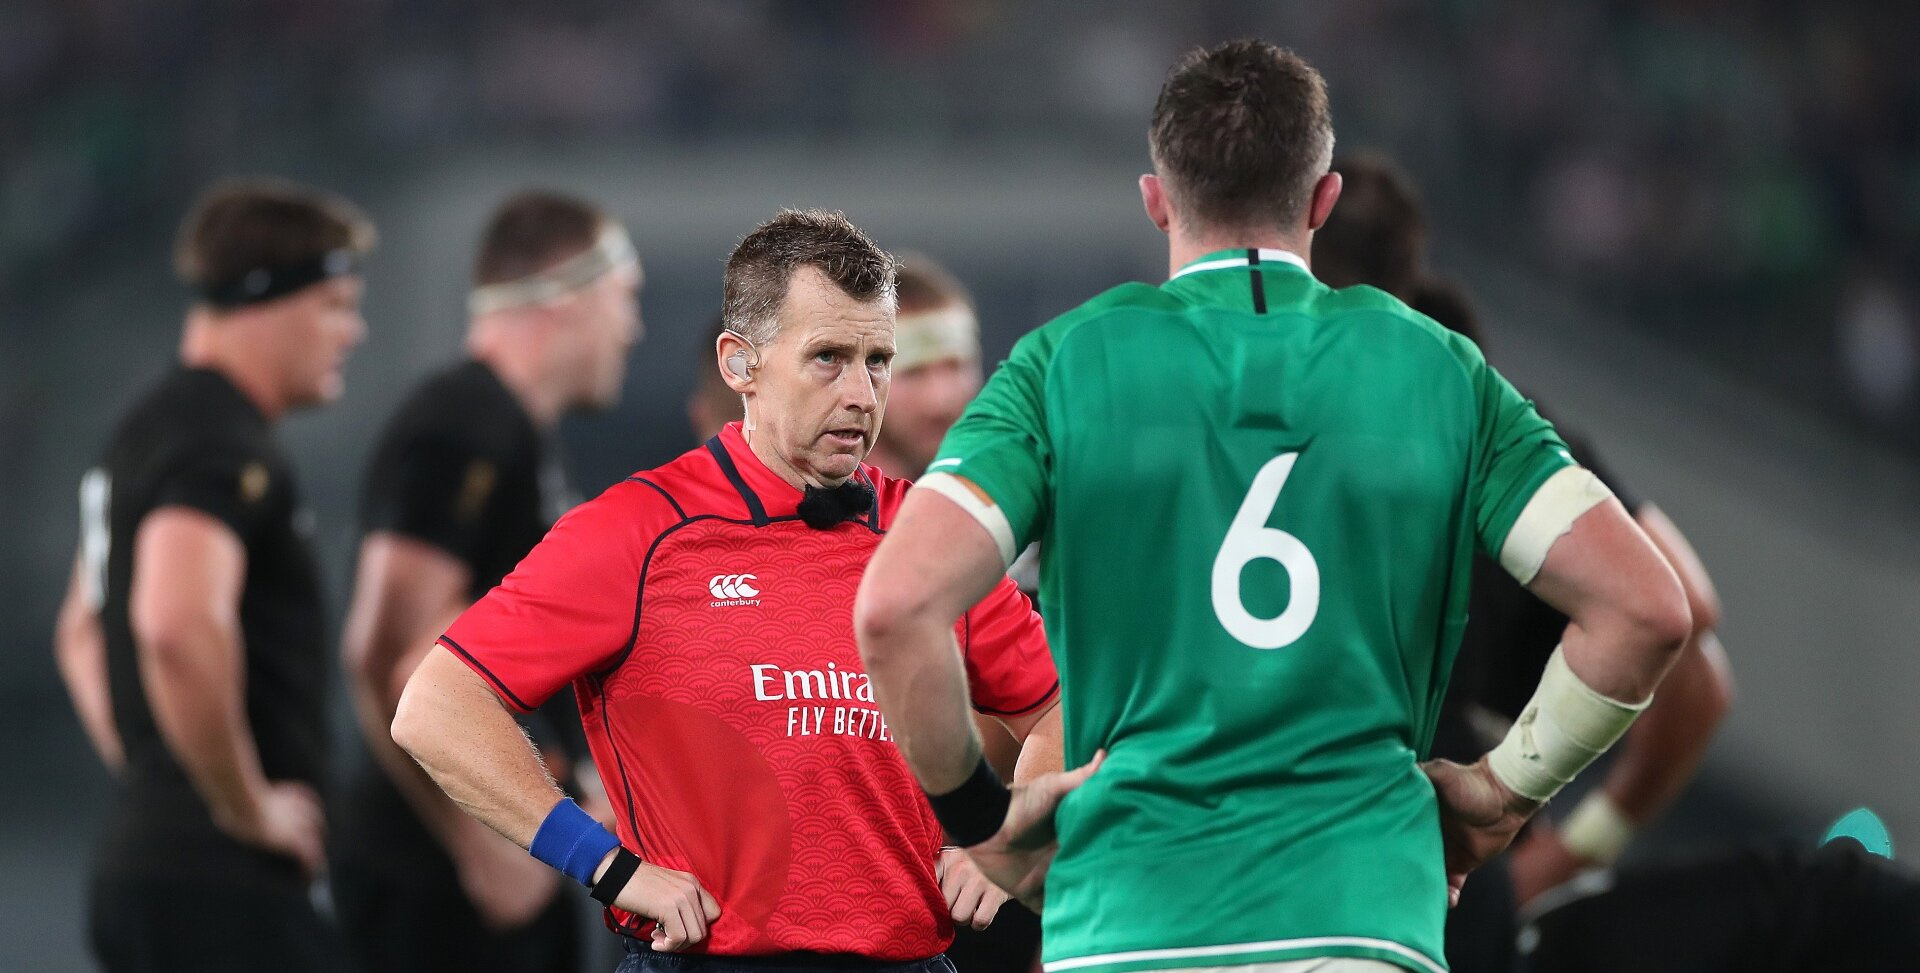 'Ridiculous call' - Ireland fans not impressed by 'strange' Nigel Owen's TMO intervention